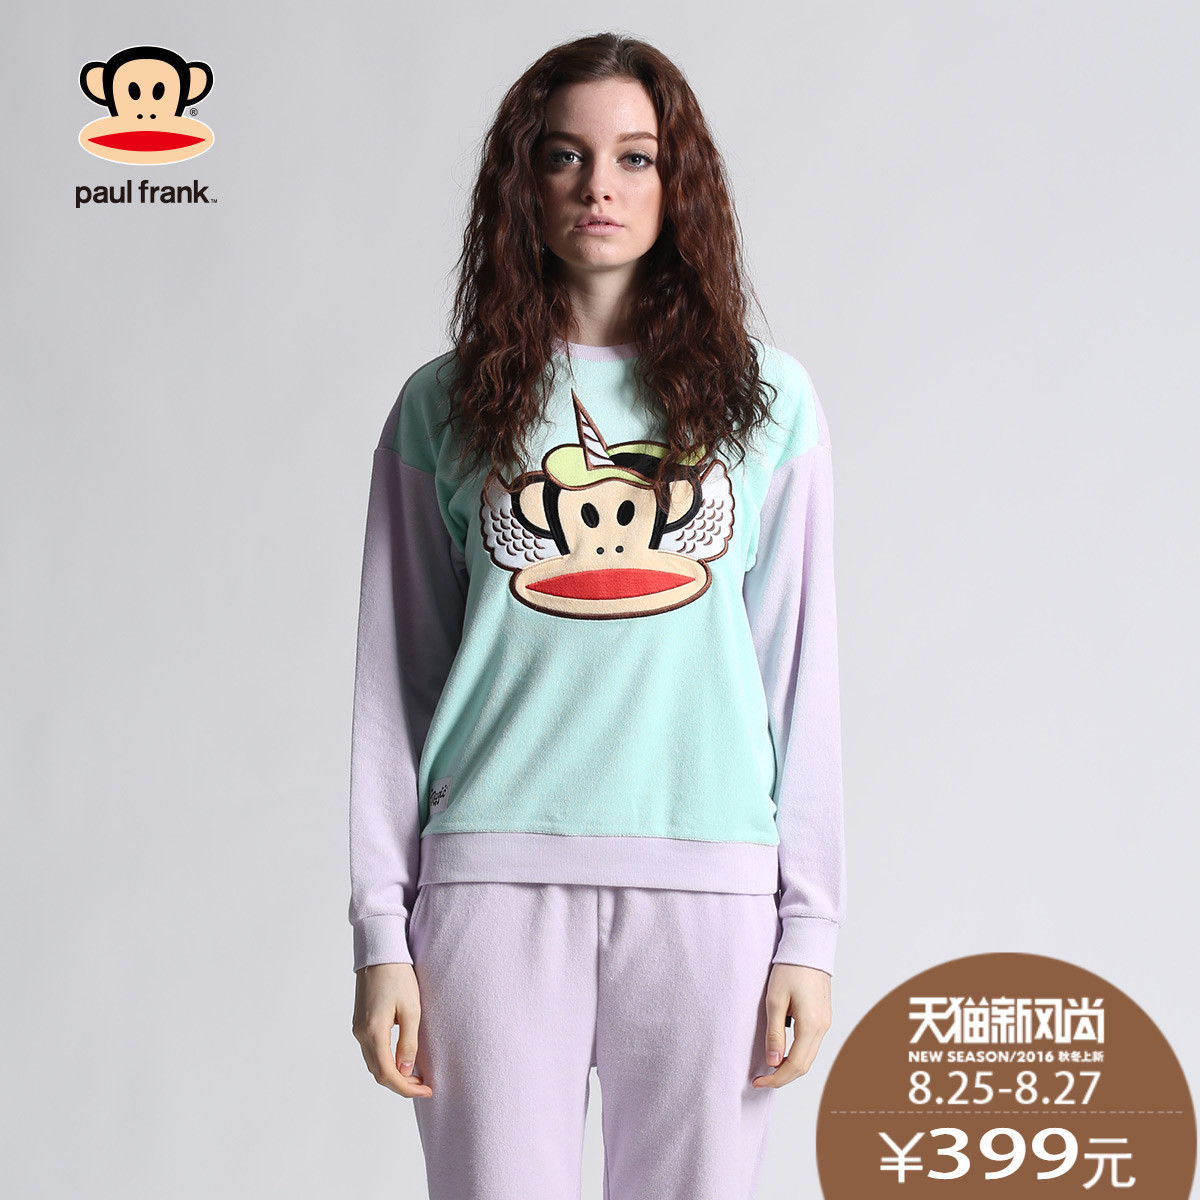 Paul frank/mouth monkey autumn models women's sweater suit home PFSU151268L [bz]